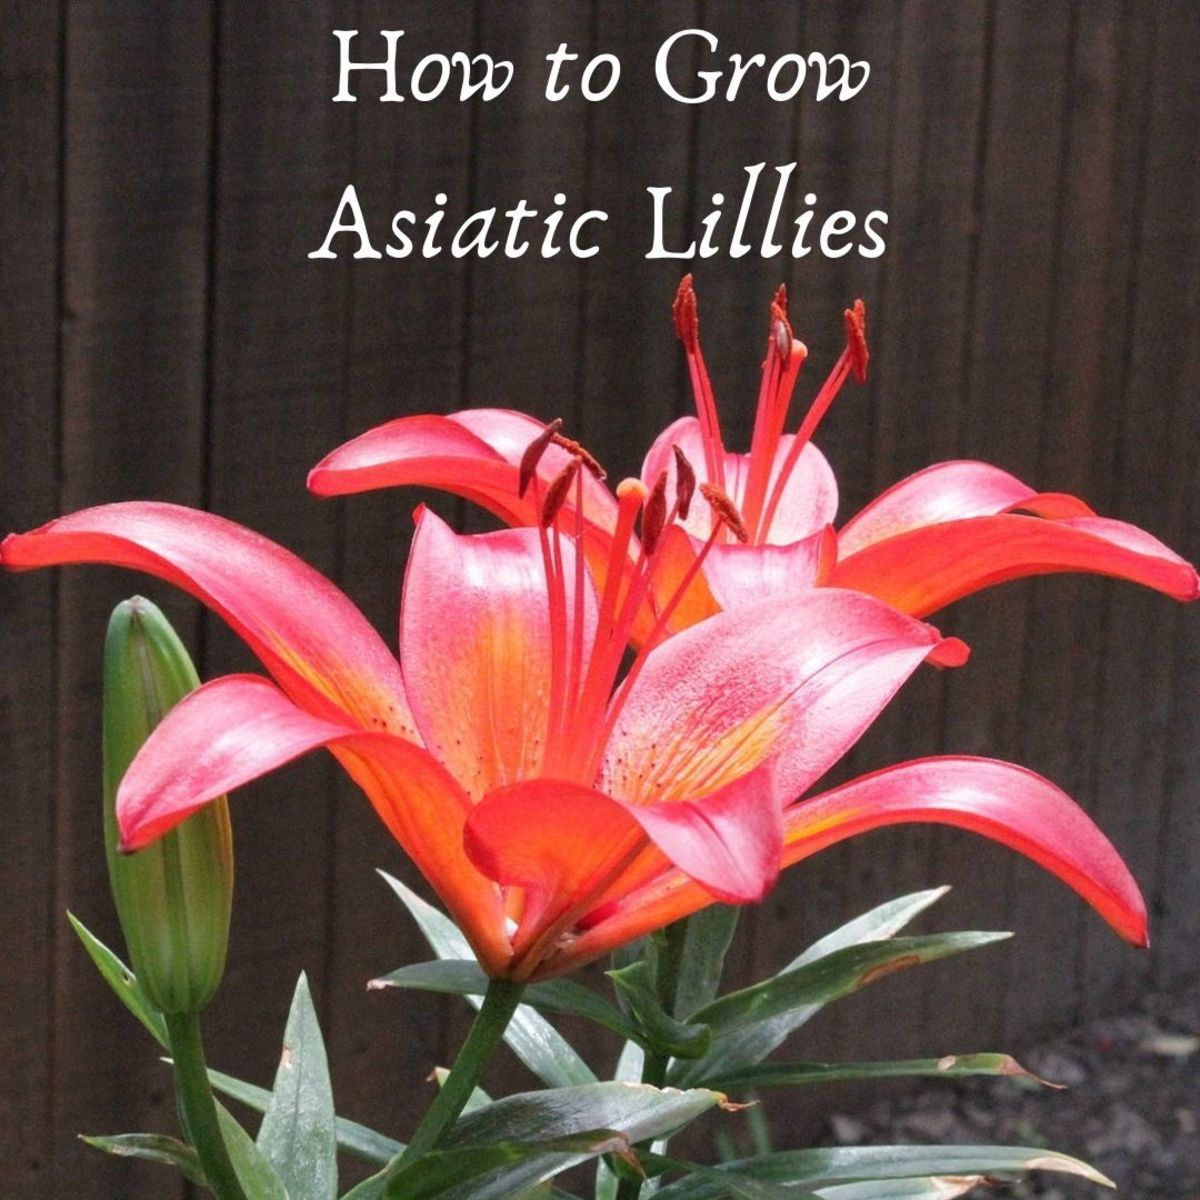 Asiatic lilies are some of the most beautiful flowers you can grow.